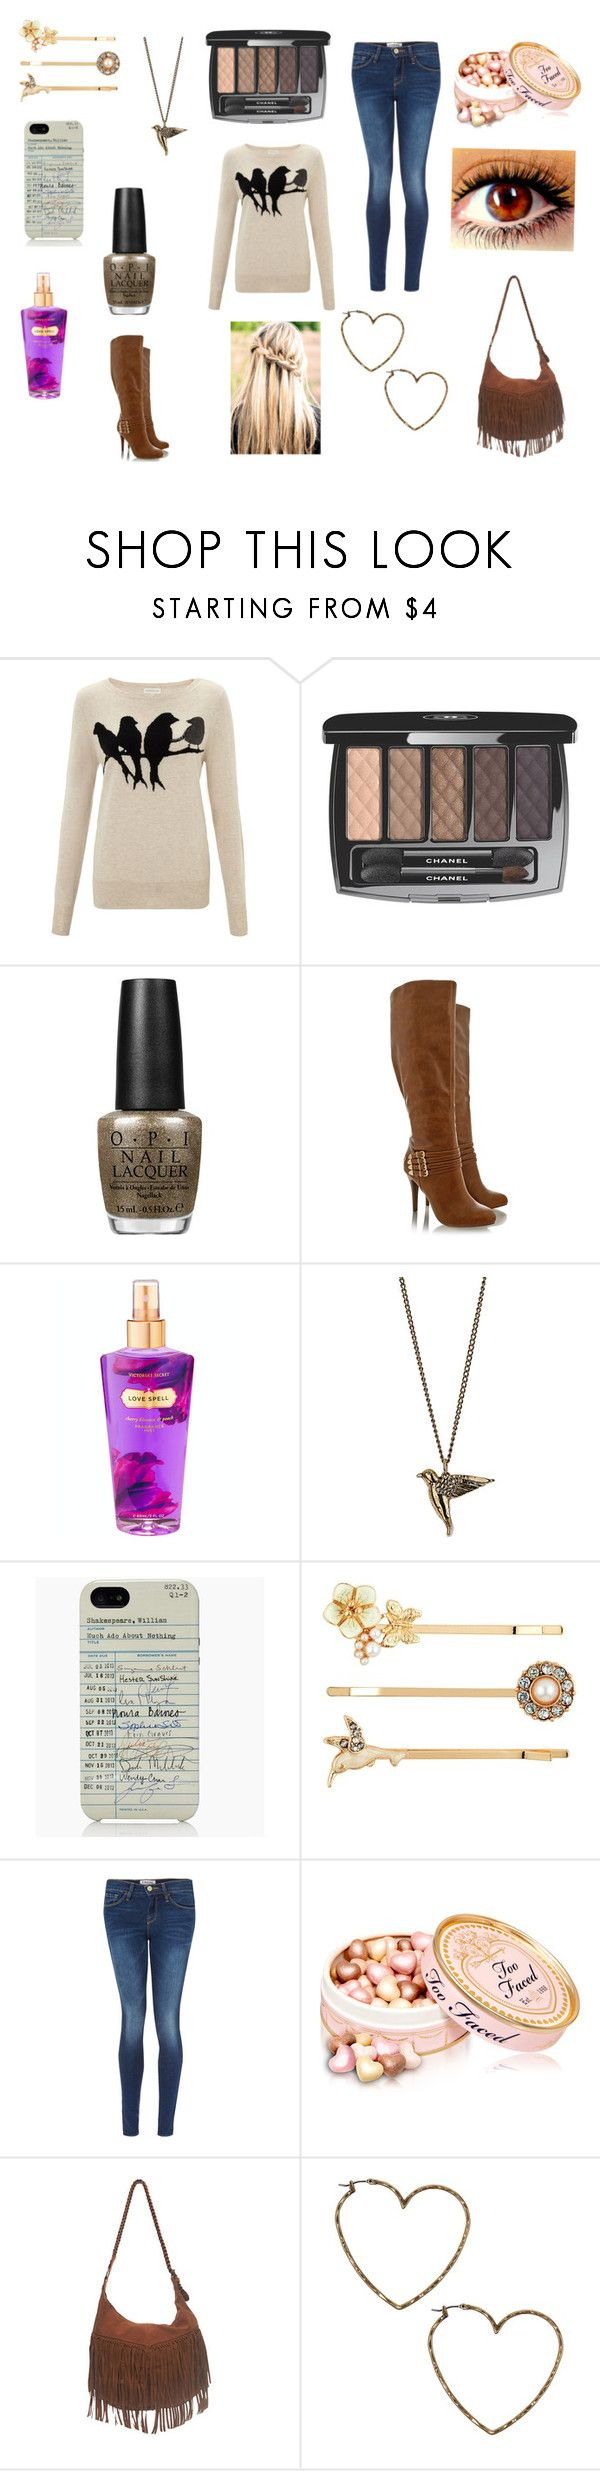 """Birdy"" by i-heart-one-d ❤ liked on Polyvore featuring Monsoon, Chanel, OPI, Blink, Victoria's Secret, Dorothy Perkins, Kate Spade, Red Herring, Frame and Wet Seal"